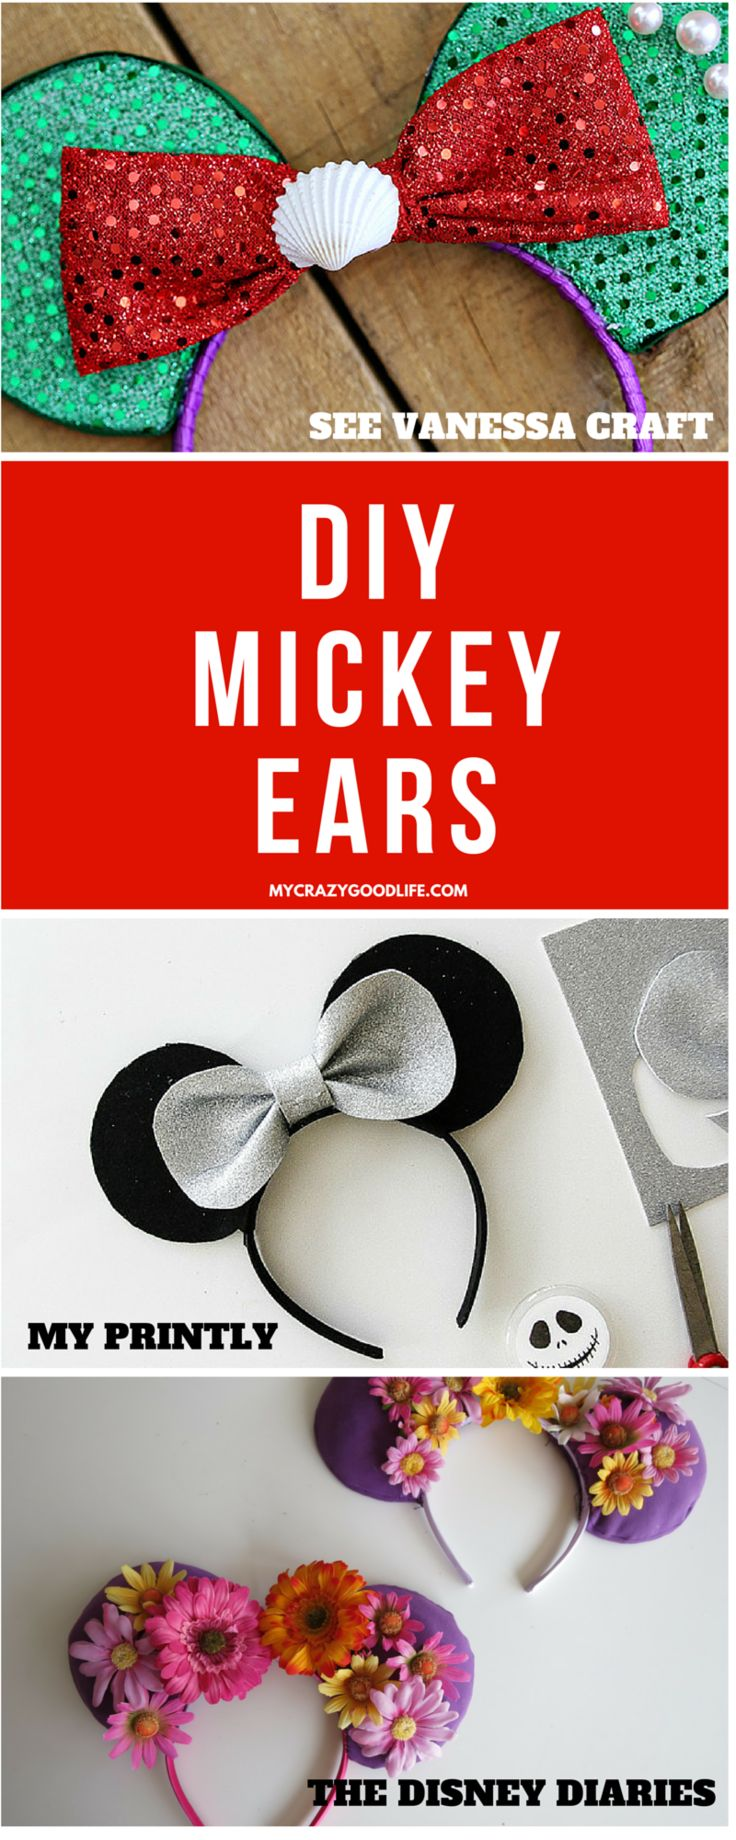 These DIY Mickey Ears tutorials will have you and your family park ready in no time! Not only are they a super fun project for the whole family, they're an awesome way to save some money, and you can get a jump on your DisneyBounding!